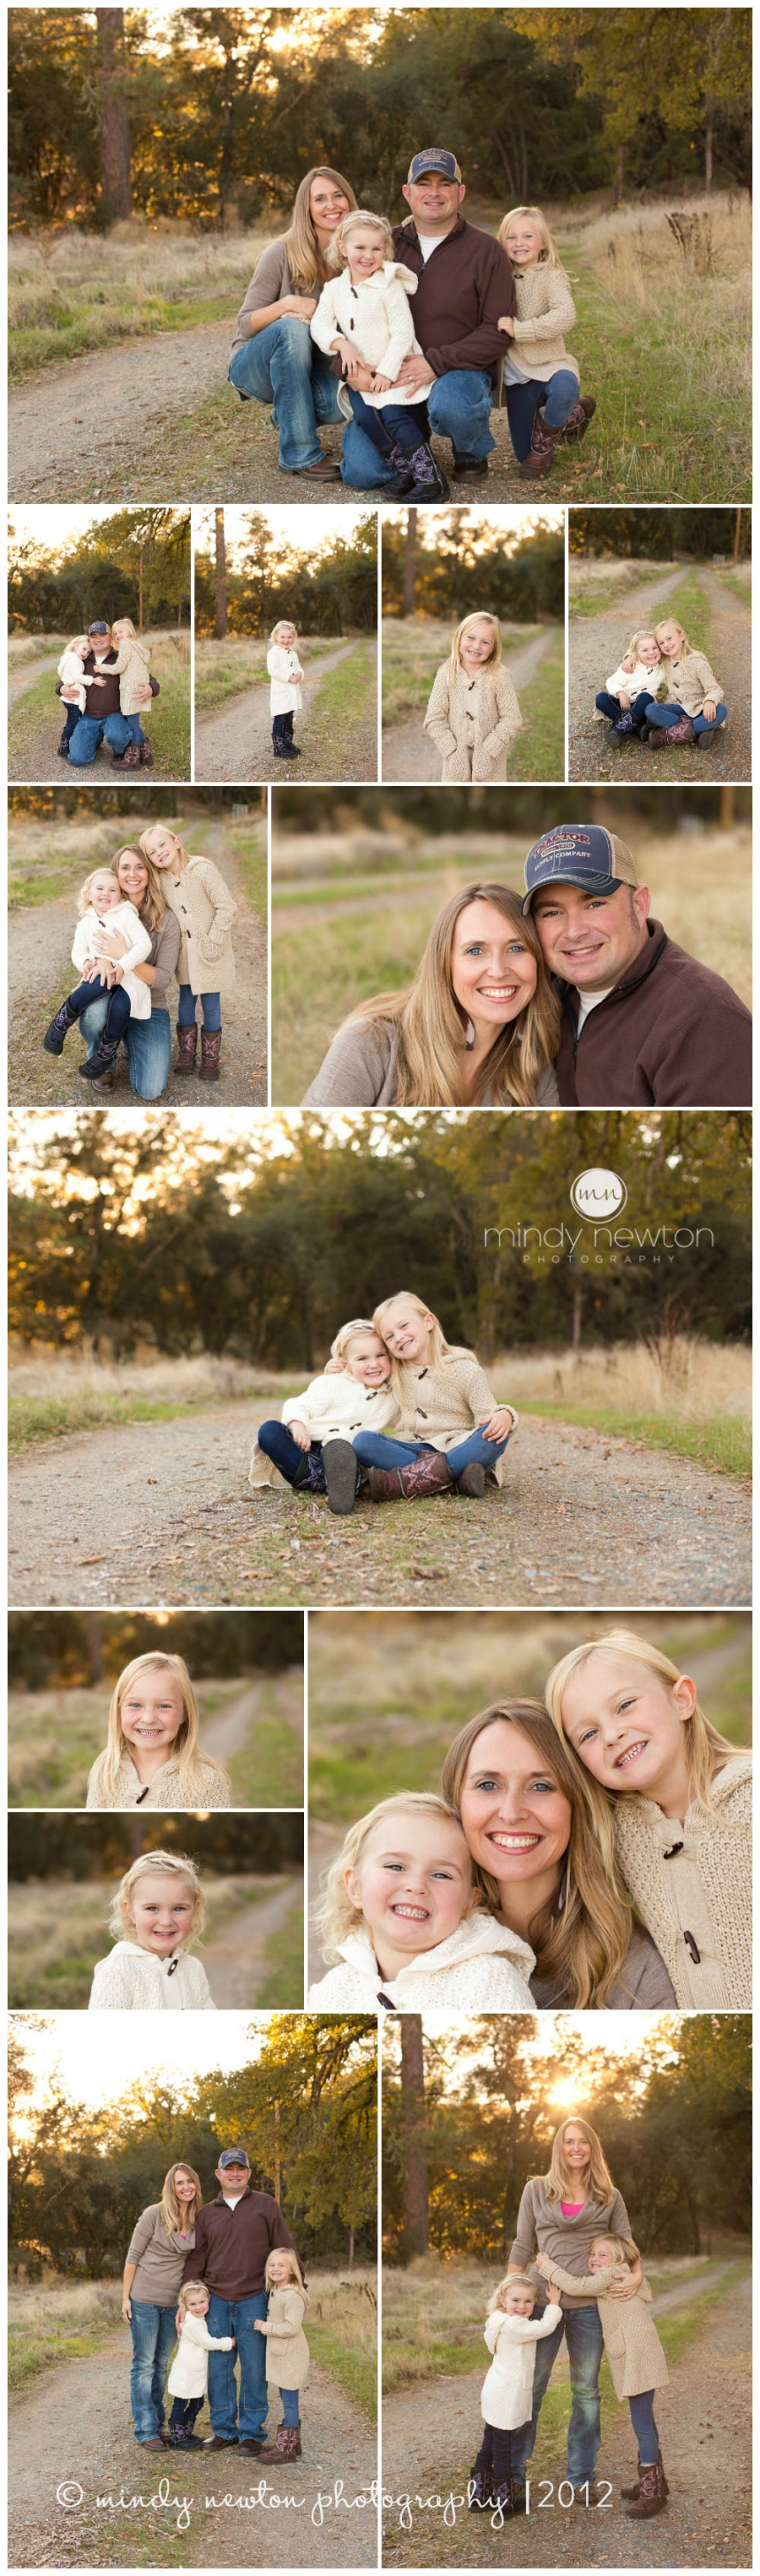 Amador County Family Photography © Mindy Newton Photography 2012